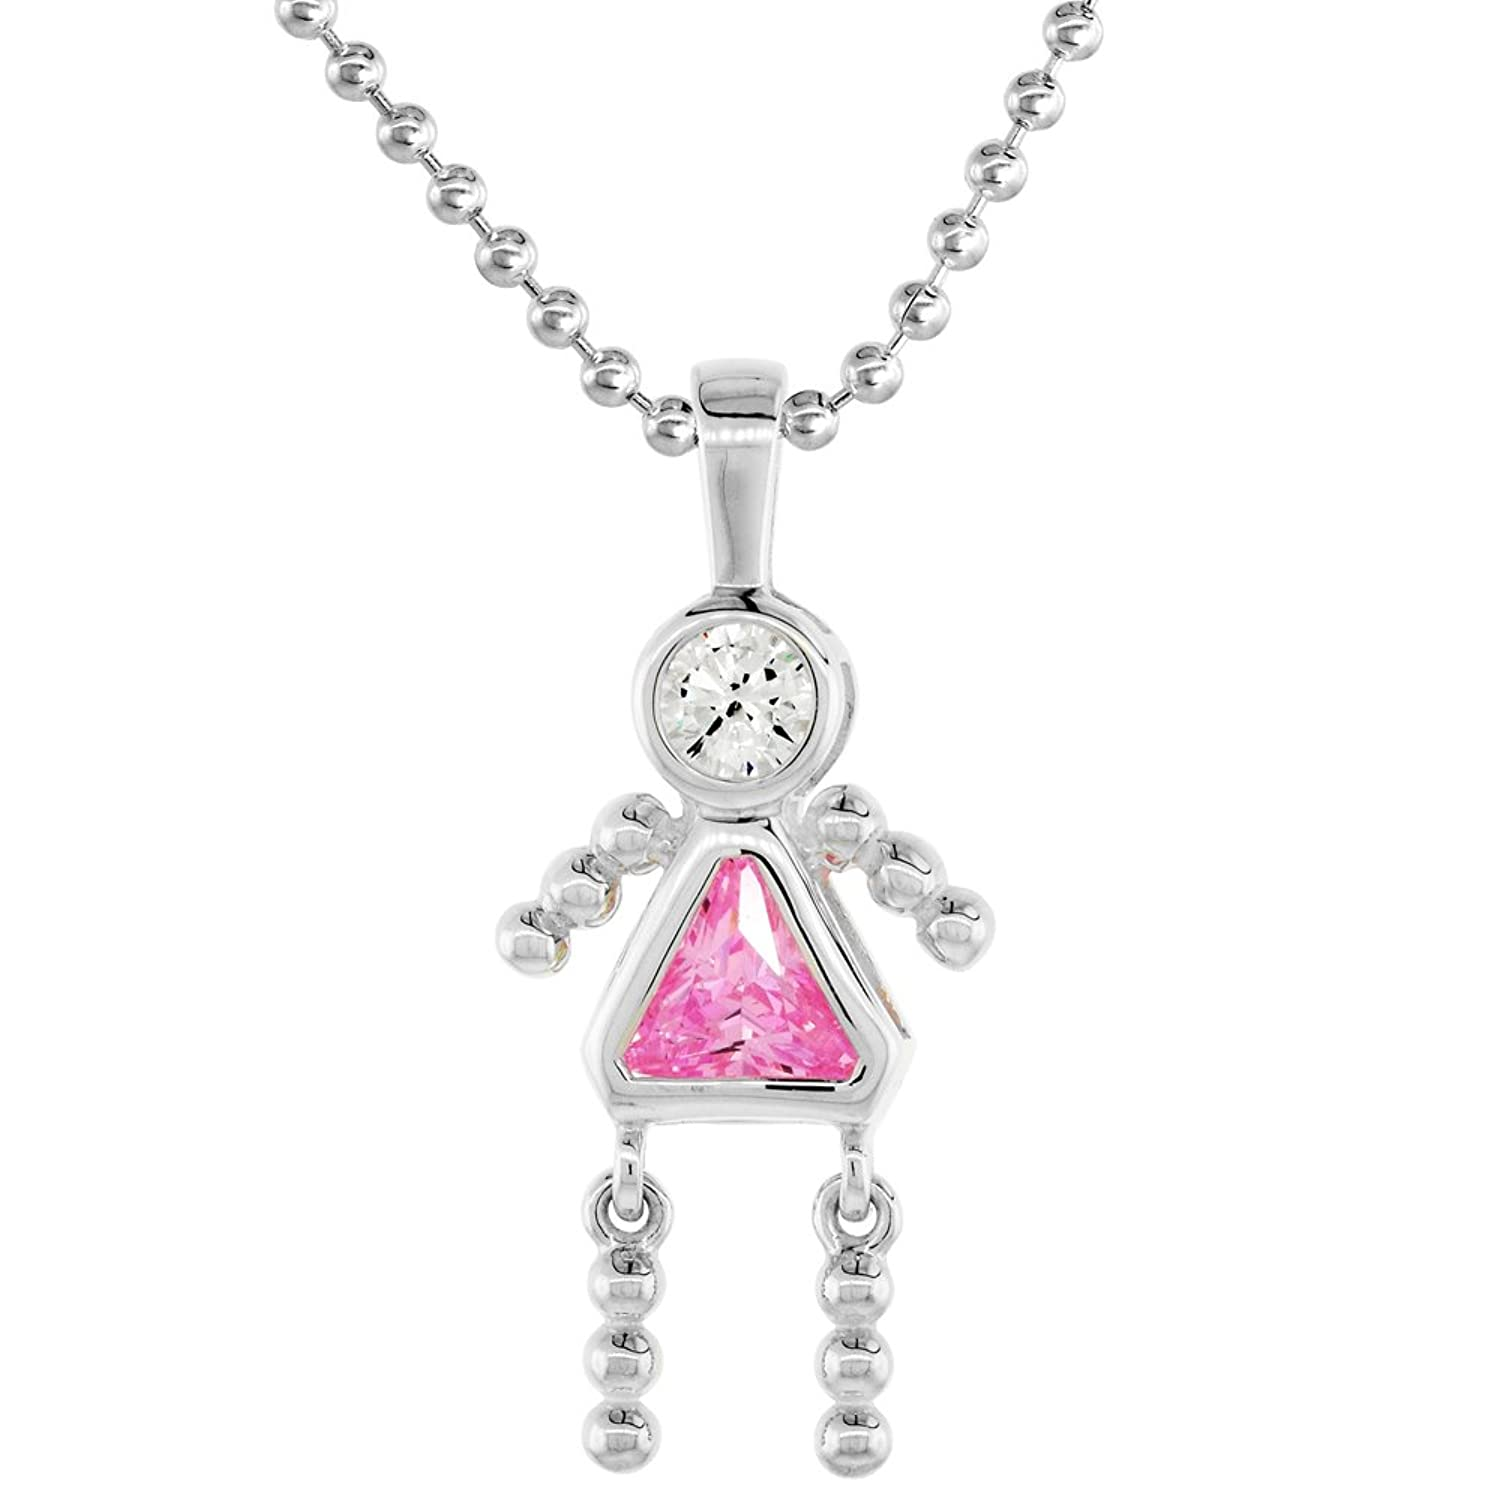 birthstones necklace double the names to mothers with outer features pin circle up kids grandkid birthstone and